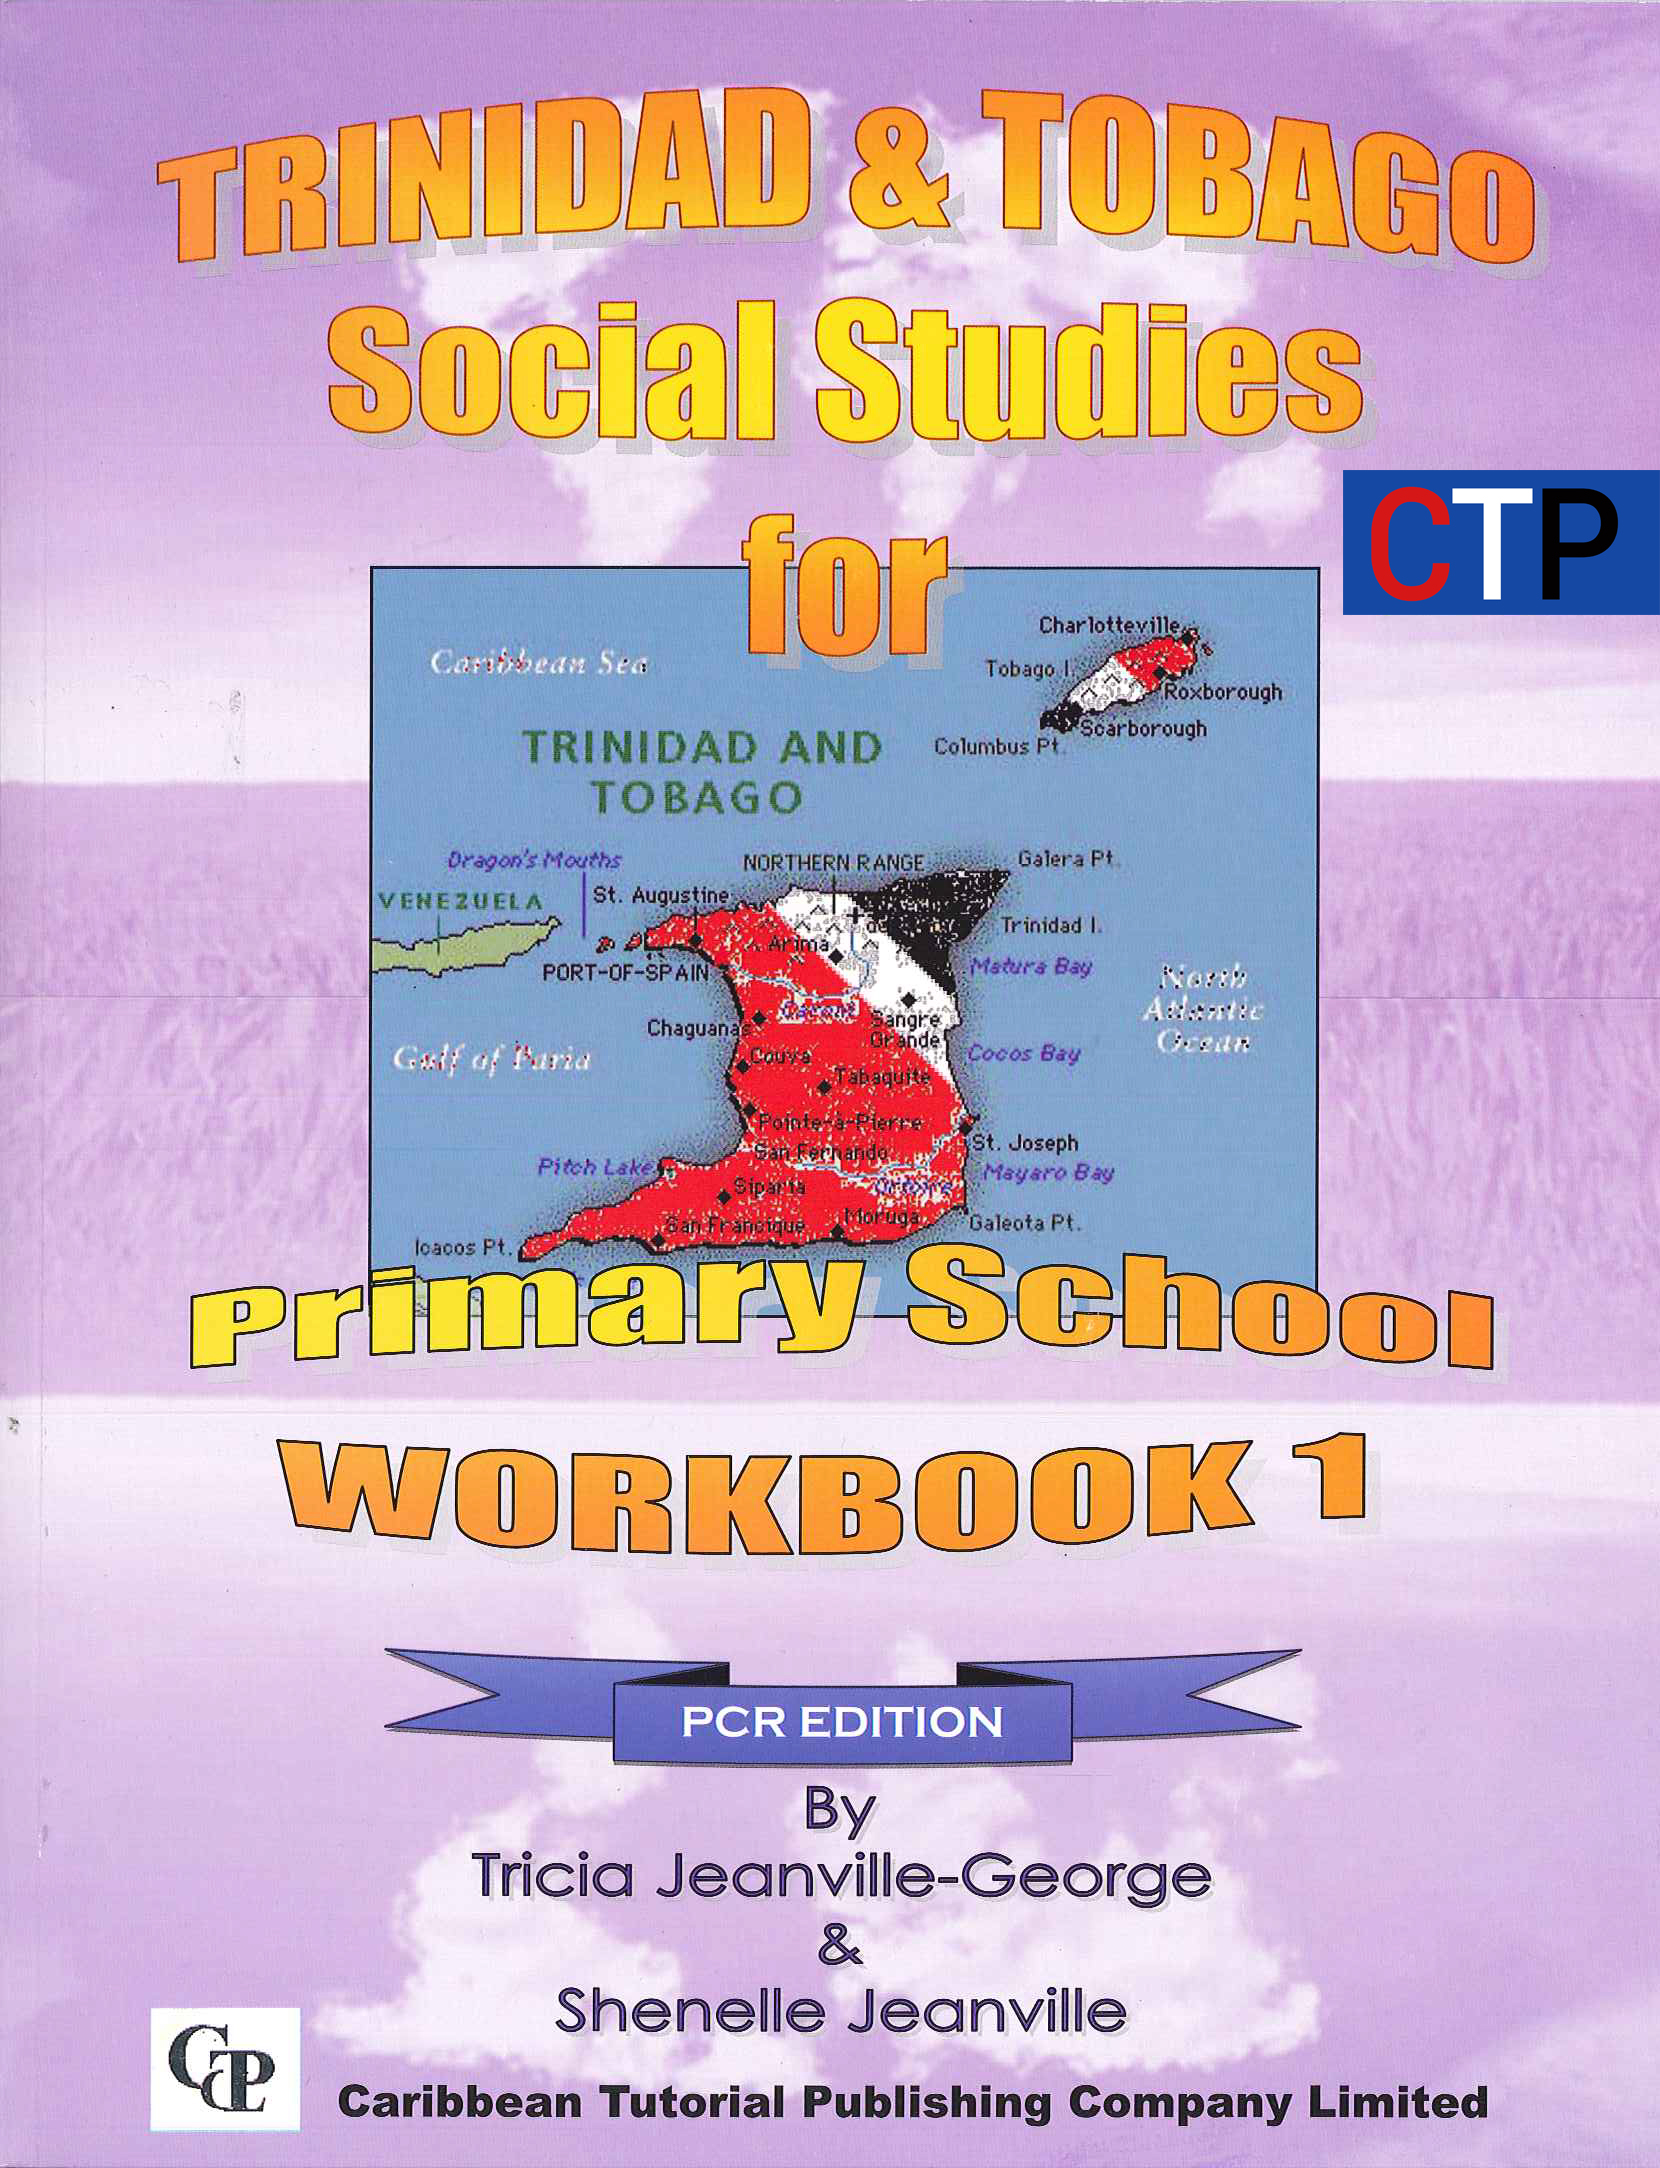 sociology crime in trinidad and tobago essay Definition of crime and deviance is: learning sociology starts here sociology revision books ask a question june 10, 2008 / c h thompson defining crime and deviance definition of crime and deviance is: deviance = behaviour which goes against all the norms.